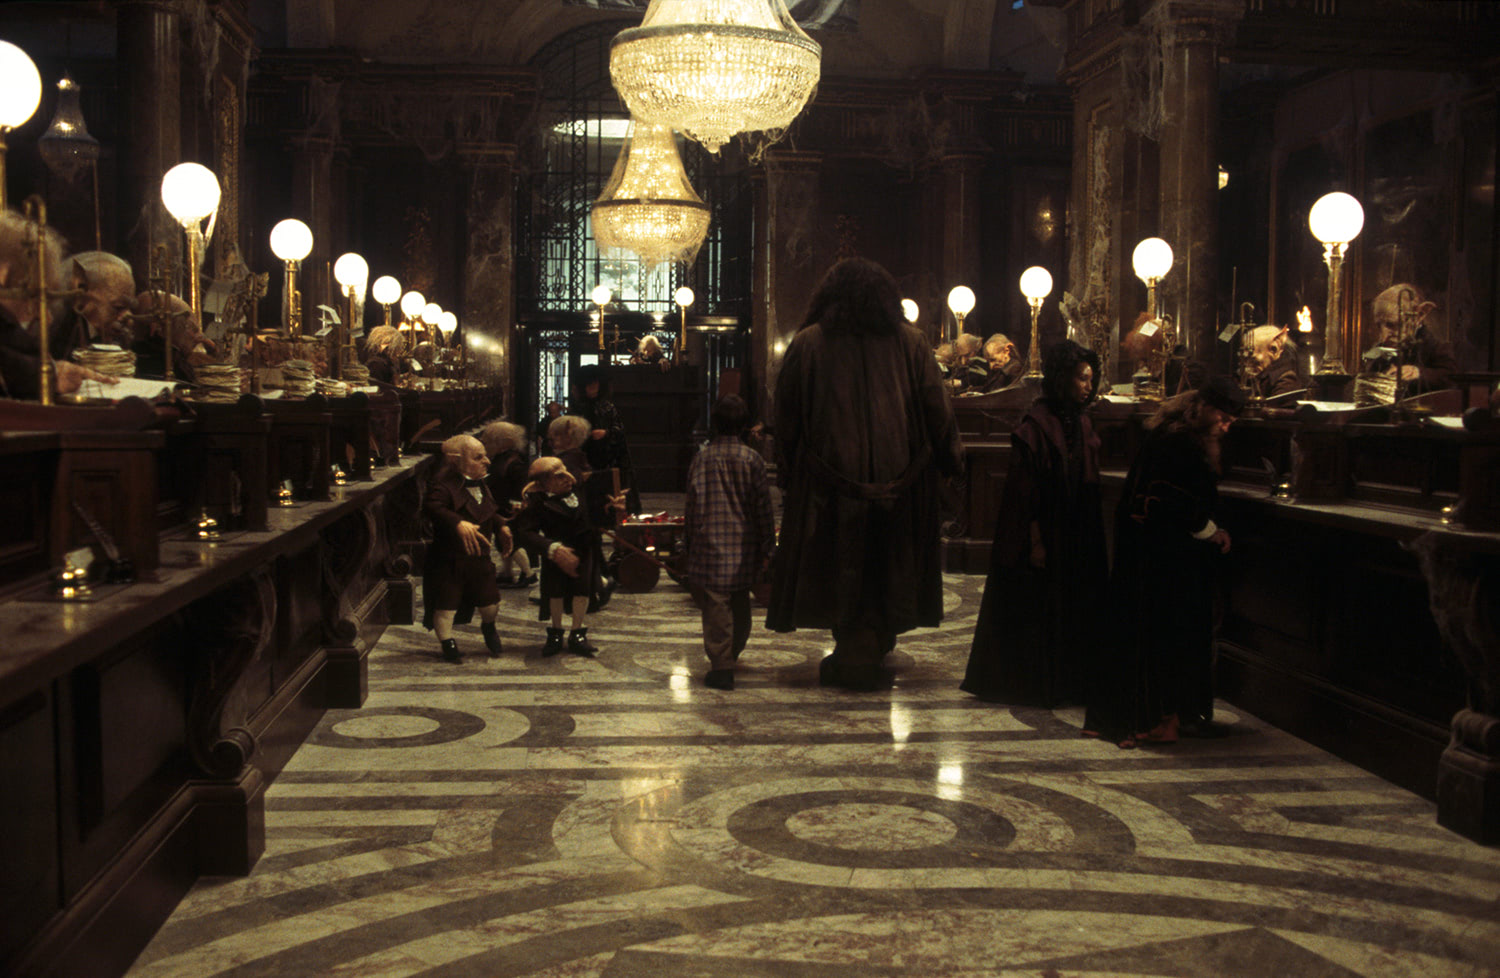 Walking through Gringotts